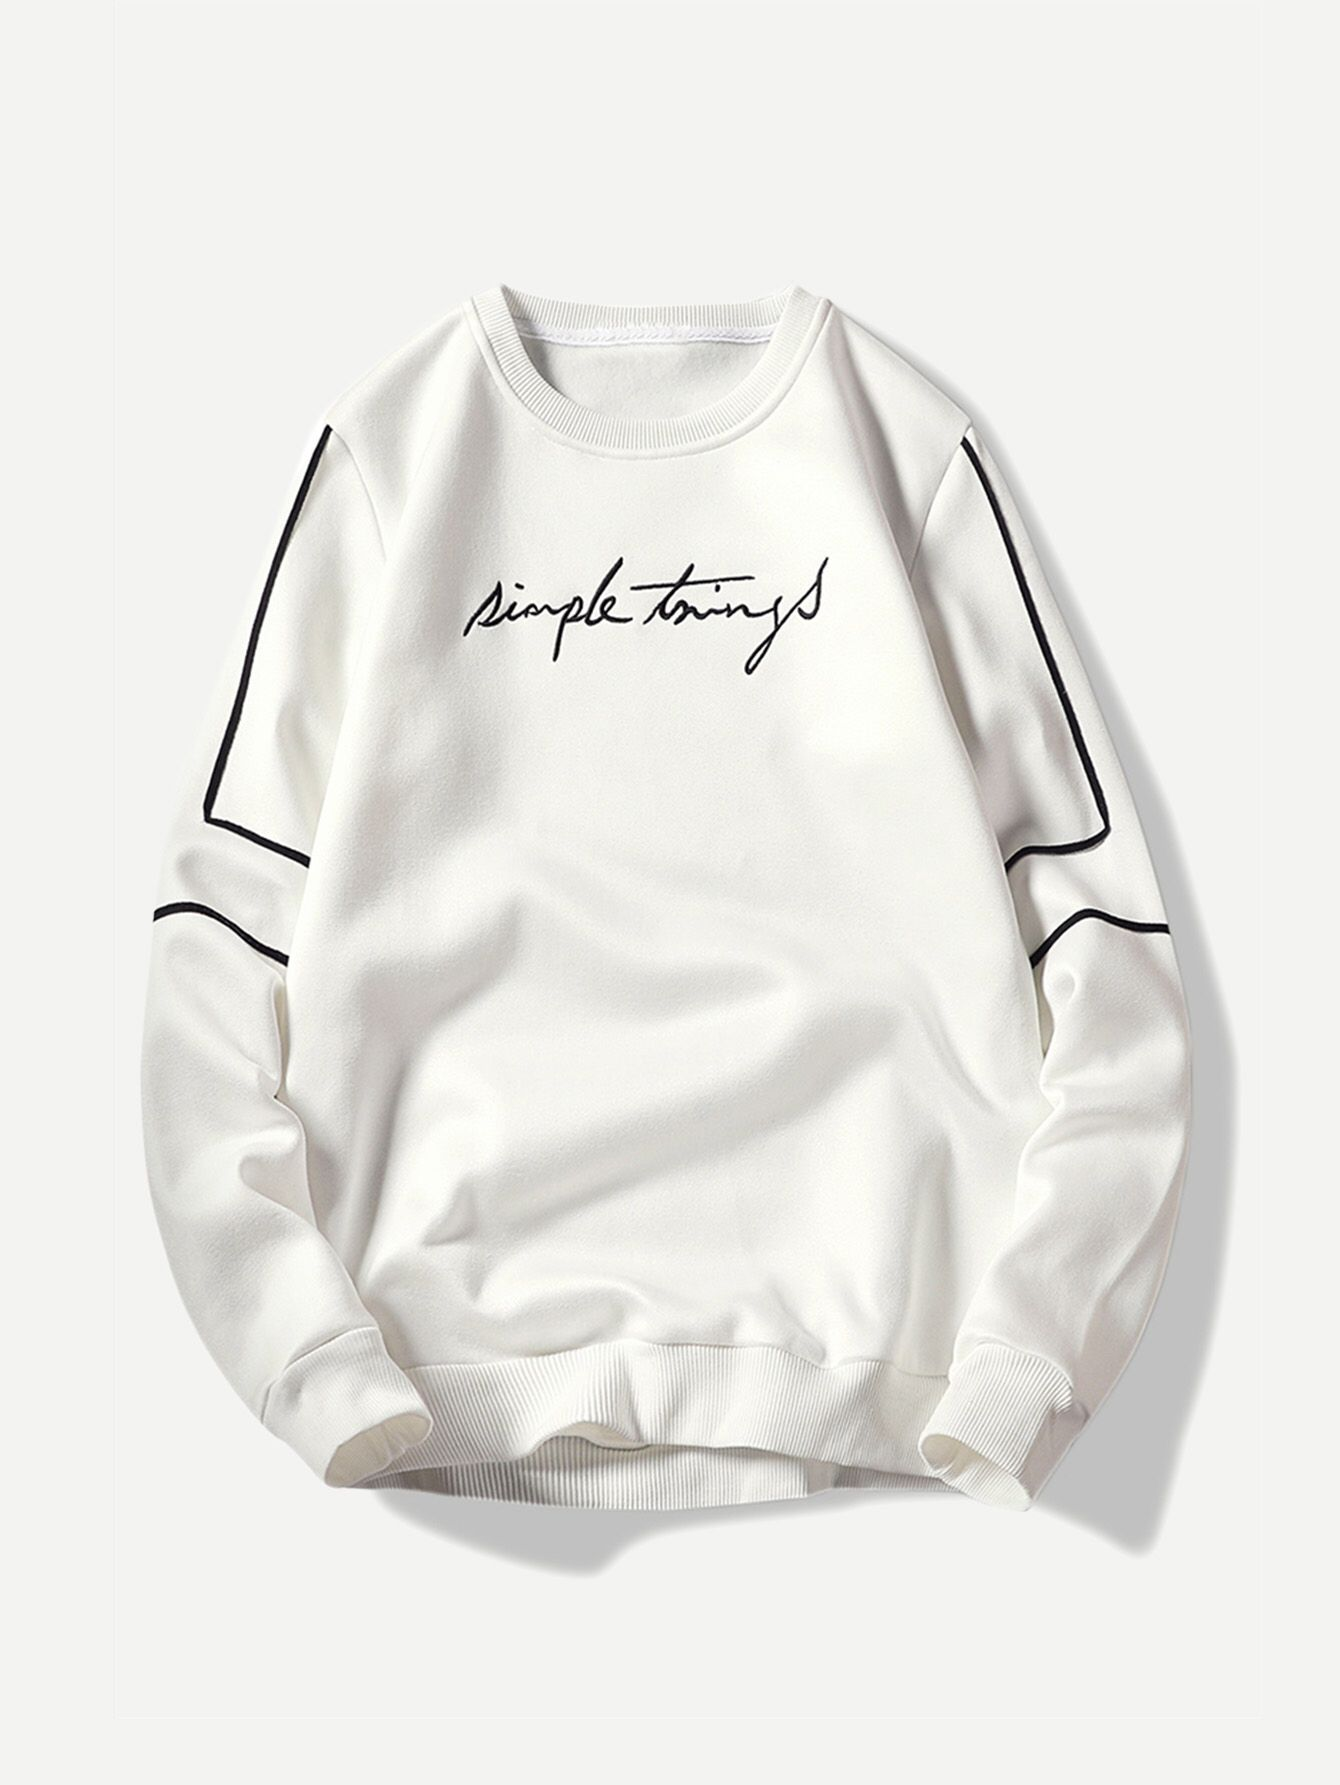 4b04e84479 Men Embroidery Sweatshirt Check out this Men Embroidery Sweatshirt on SHEIN  and explore more to meet your fashion needs!